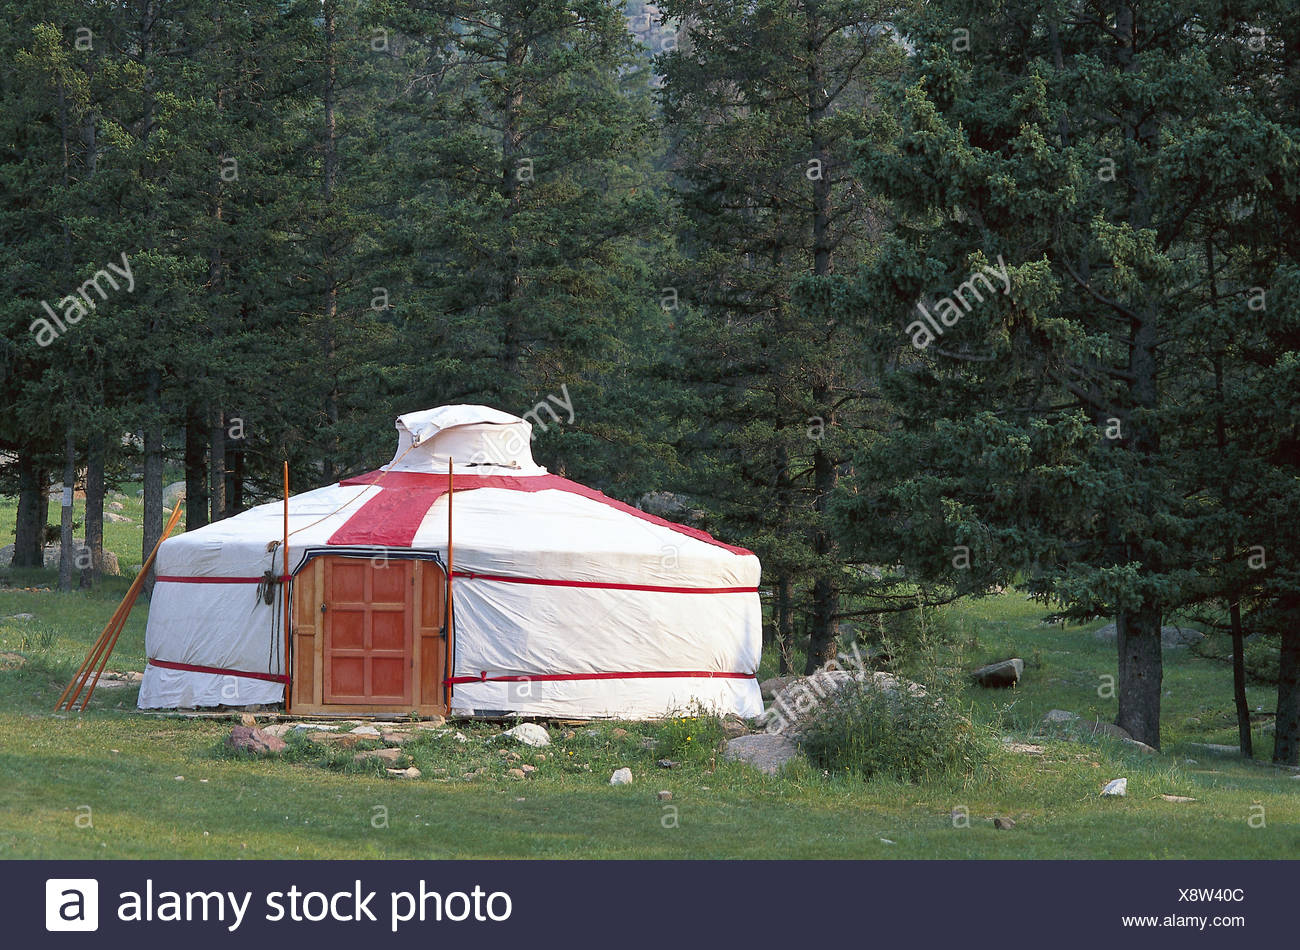 Mongolia, province of Tov, cloister of Manshir, edge of the forest, Jurte Central Asia, wood, Ger, tent, round tent, residential tent, nomad's tent, dwelling, typically, tradition, conception, nomad, living conditions, simply, simply, seclusion, rest, silence, Idyll - Stock Image